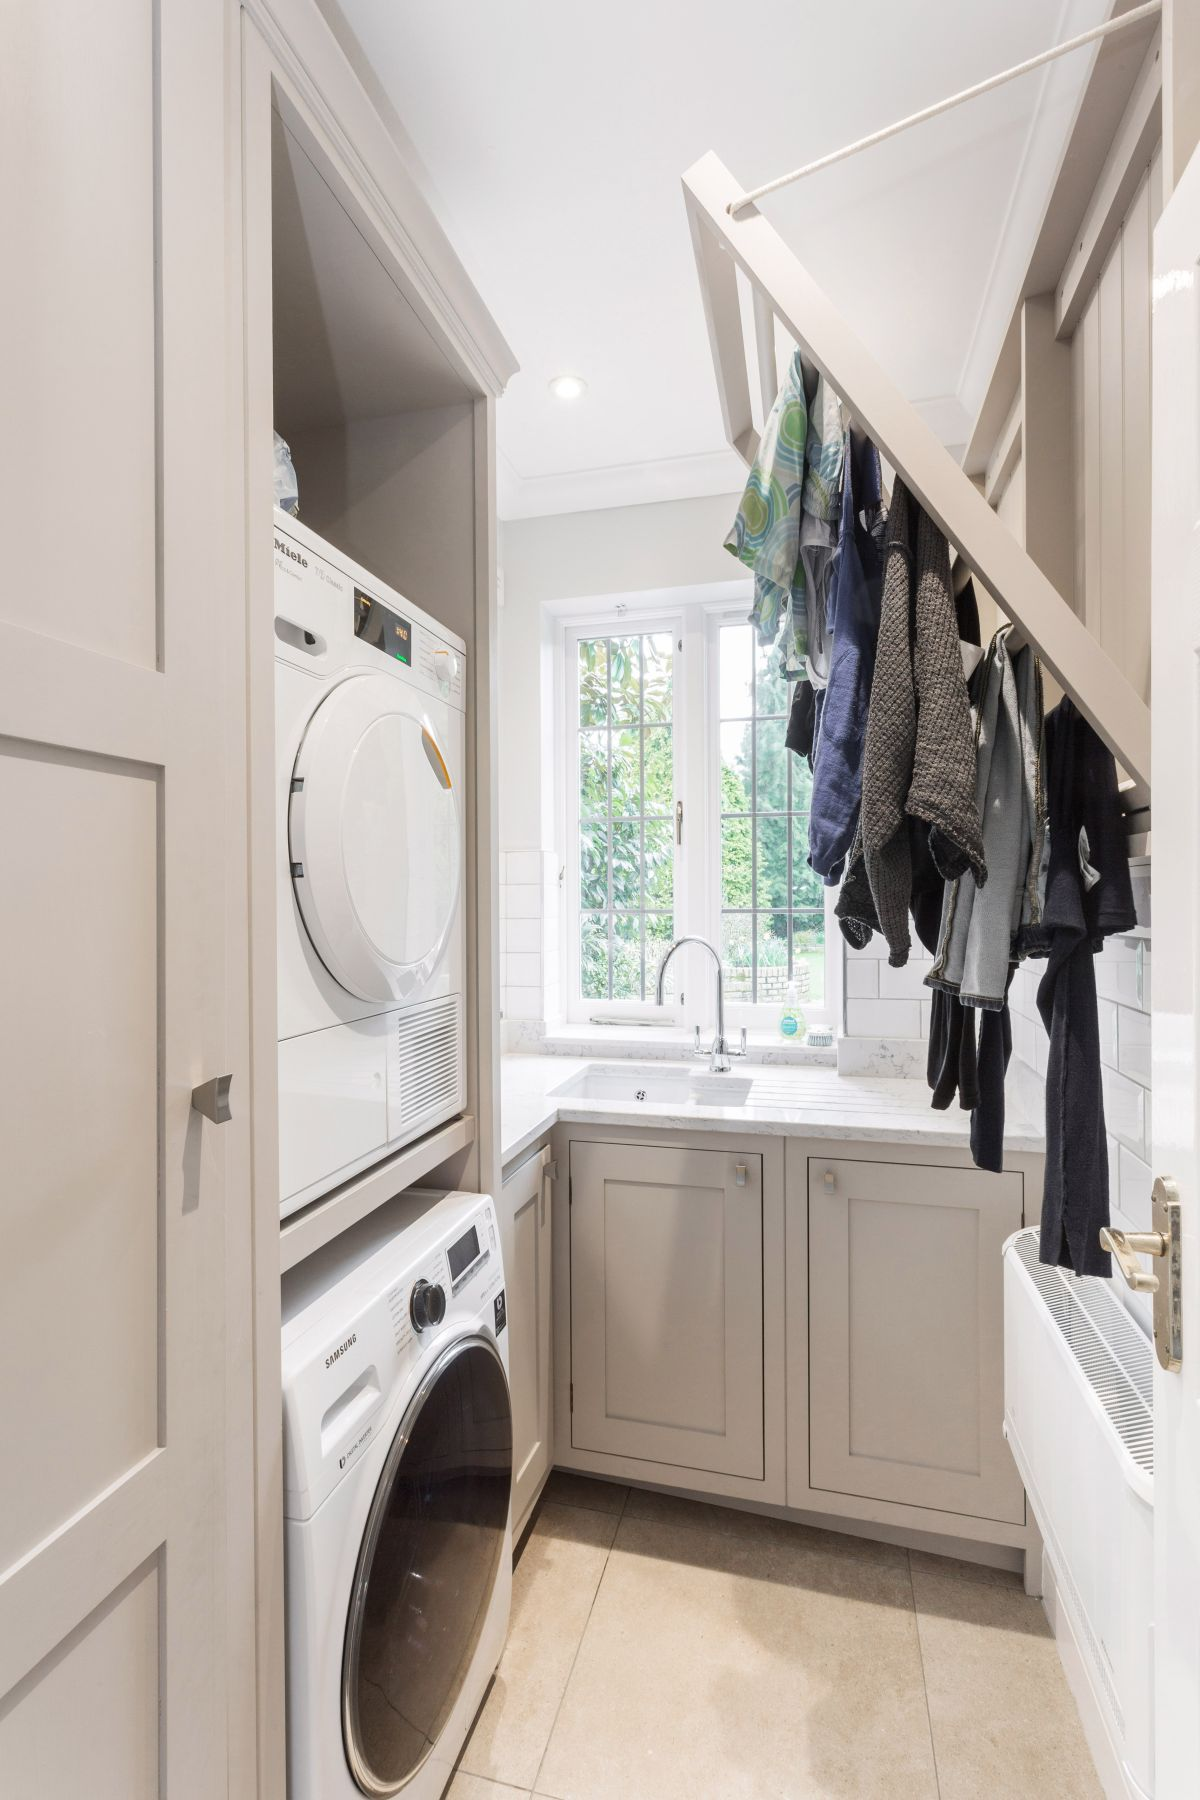 Utility Room Ideas 14 Ways To Make The Most Of Your Space